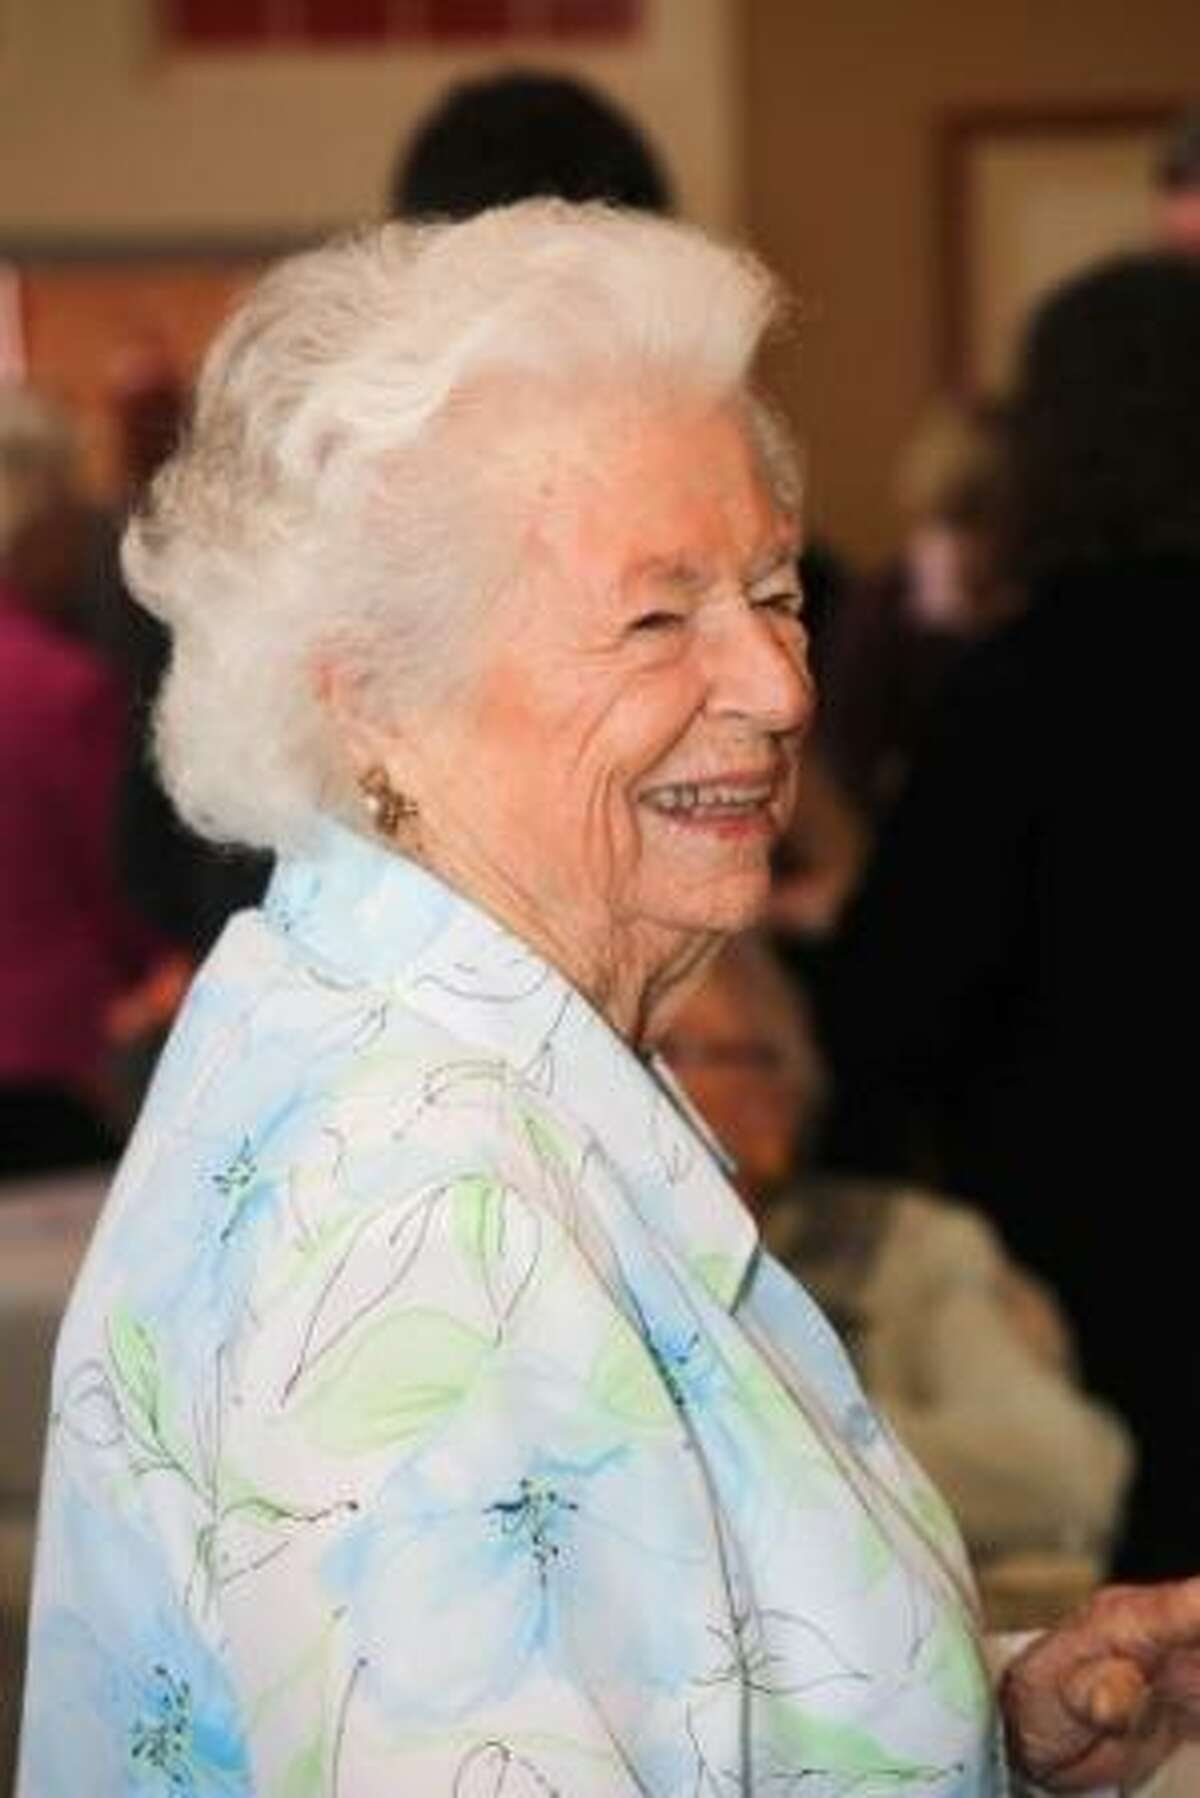 Priscilla Buckley on her 90th birthday last year. Photo courtesy of the Buckley family.